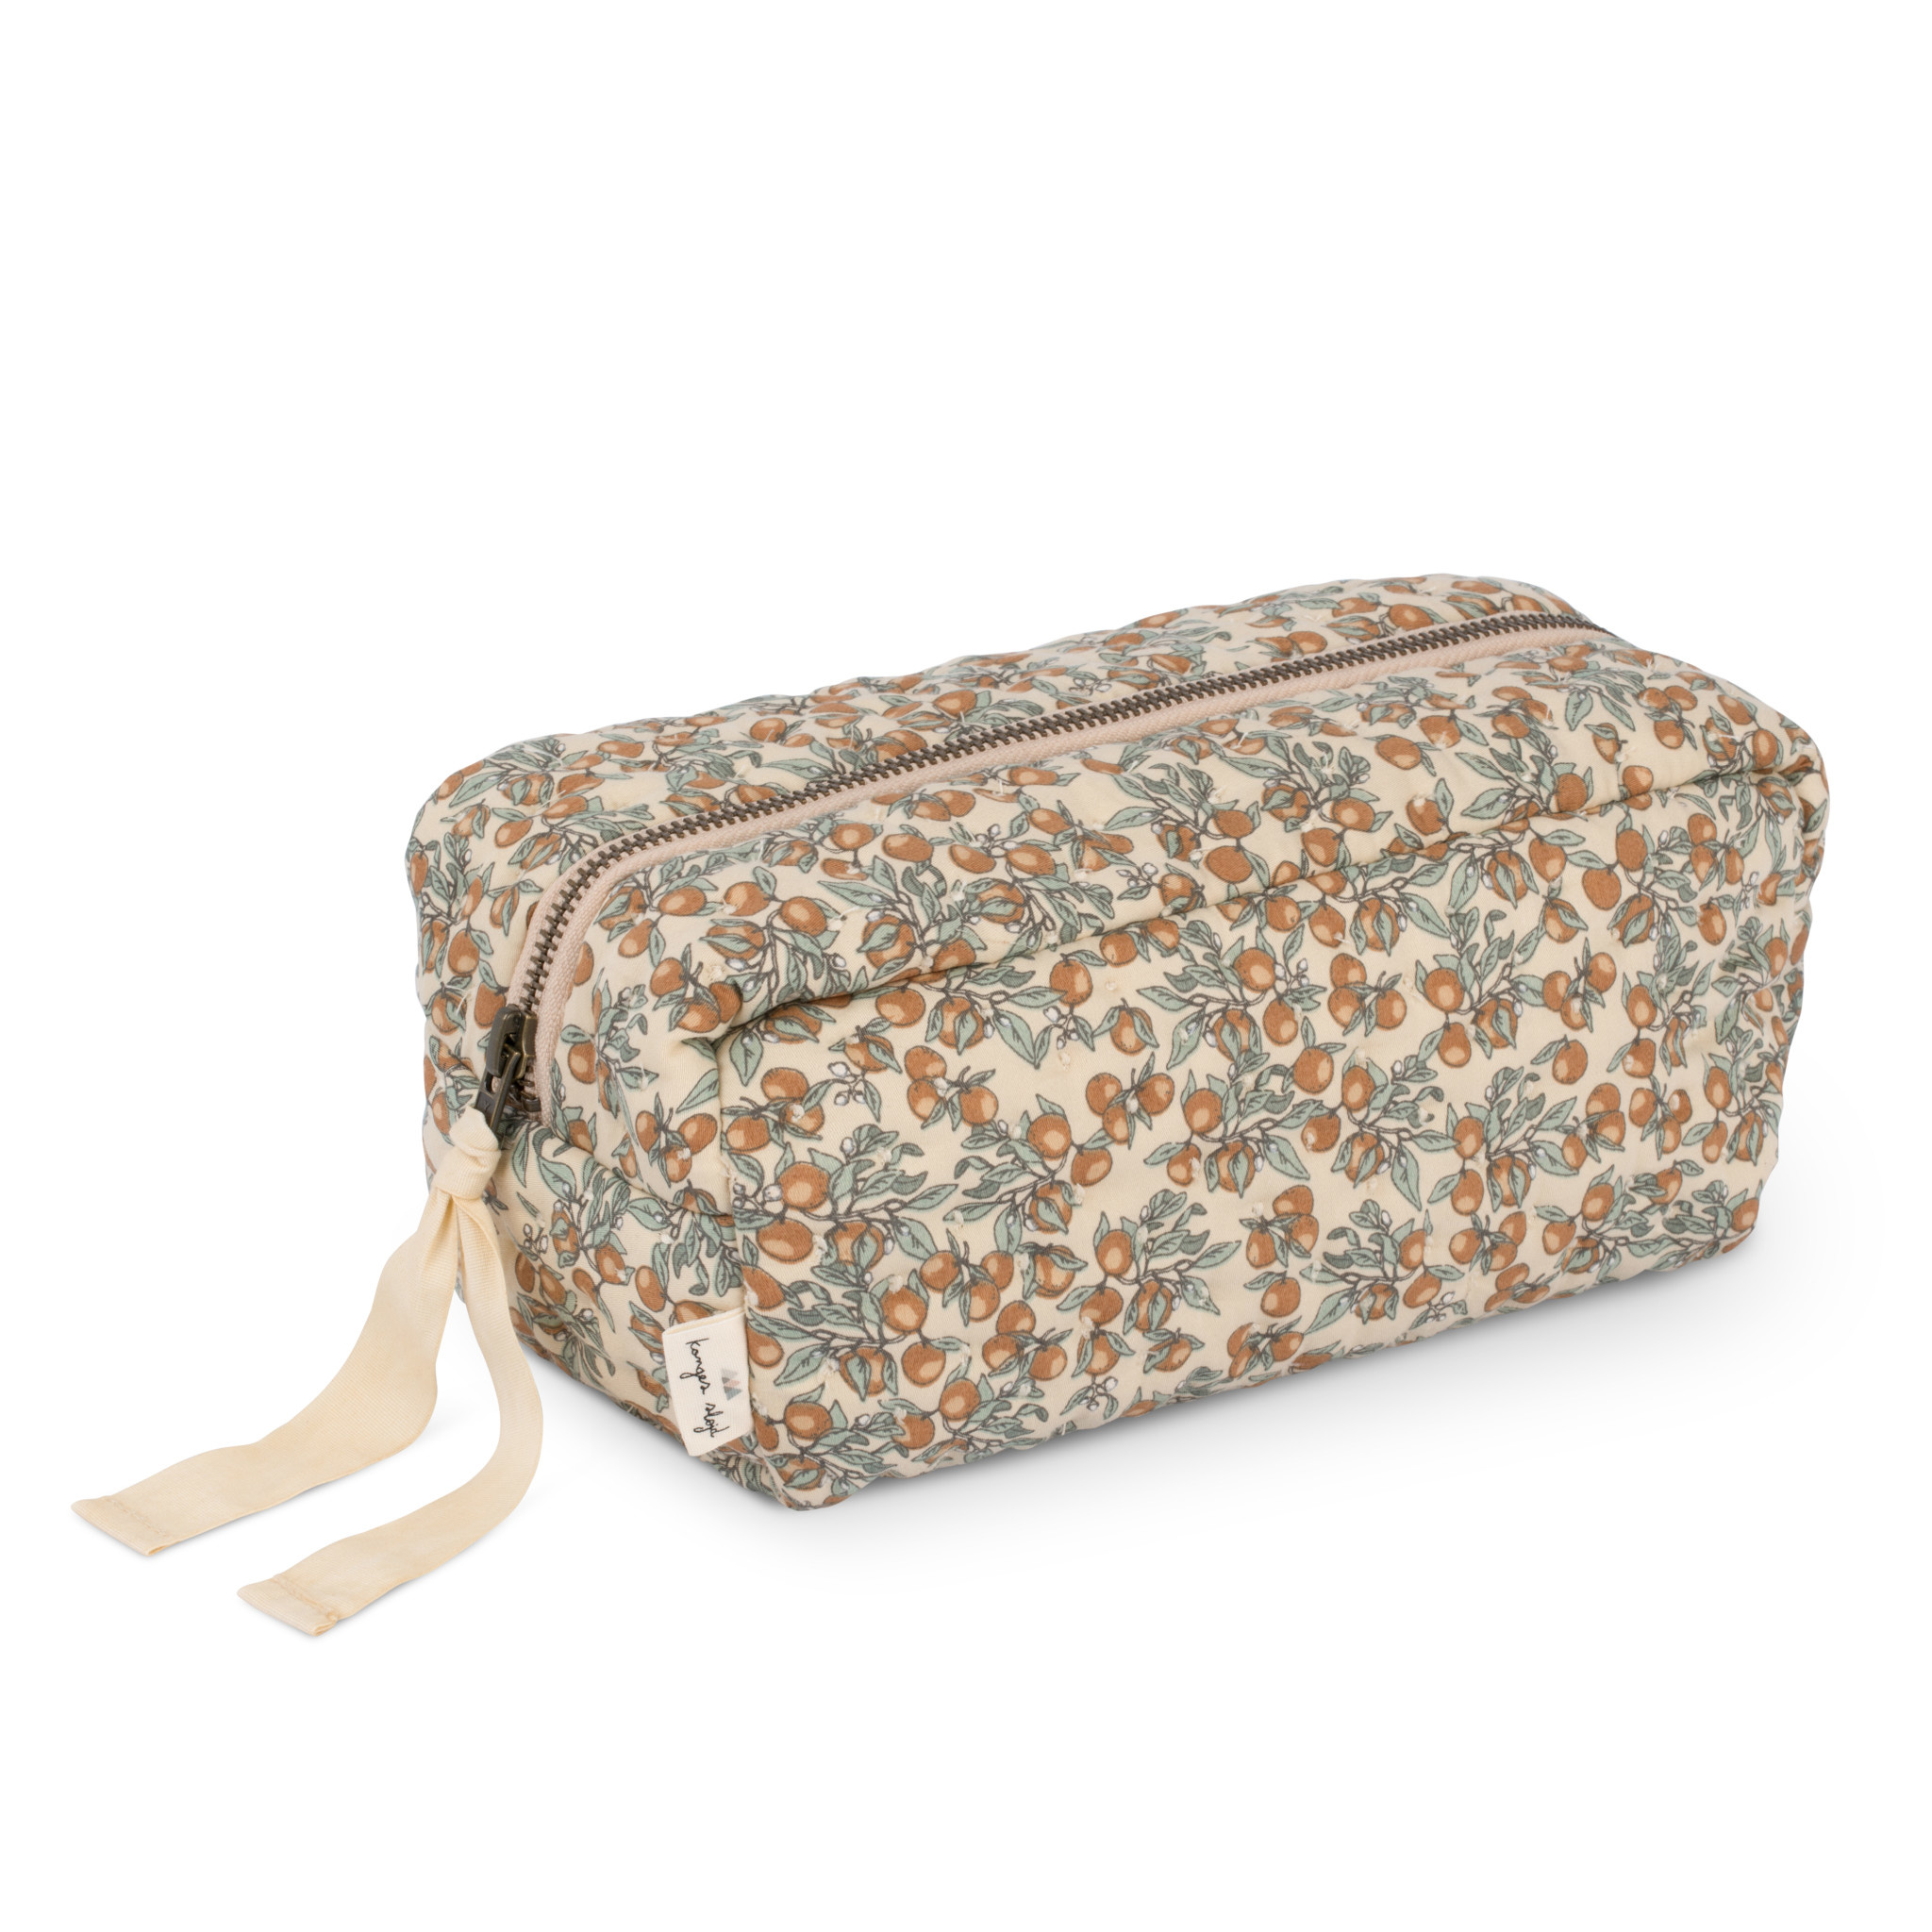 Quilted toiletry bag orangery beige-1